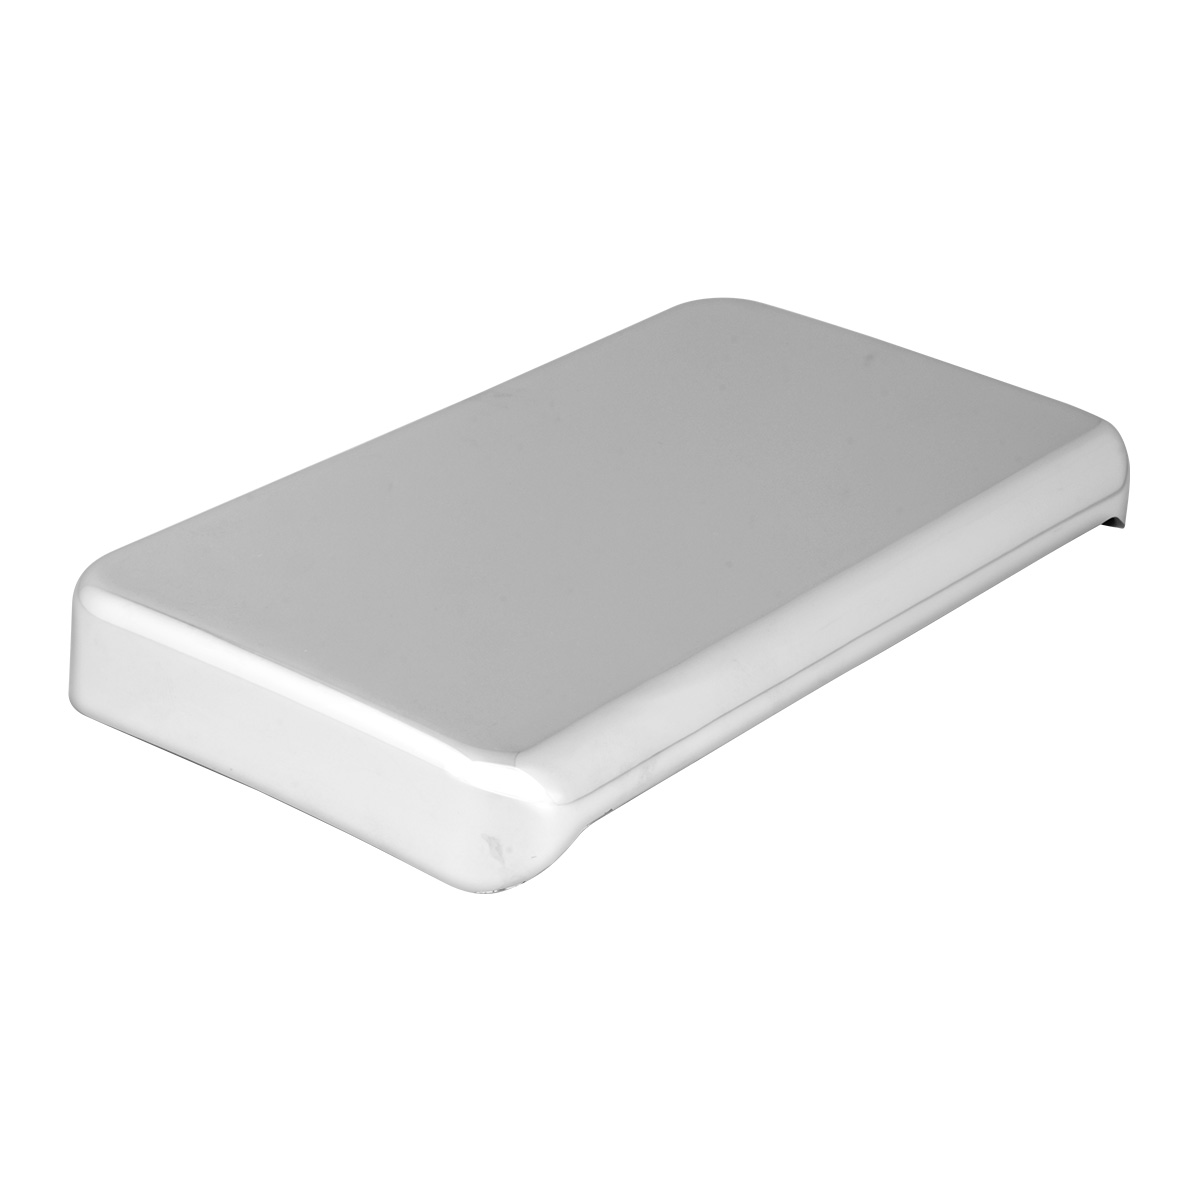 Driver Side Exterior Power Outlet Cover - Angle View